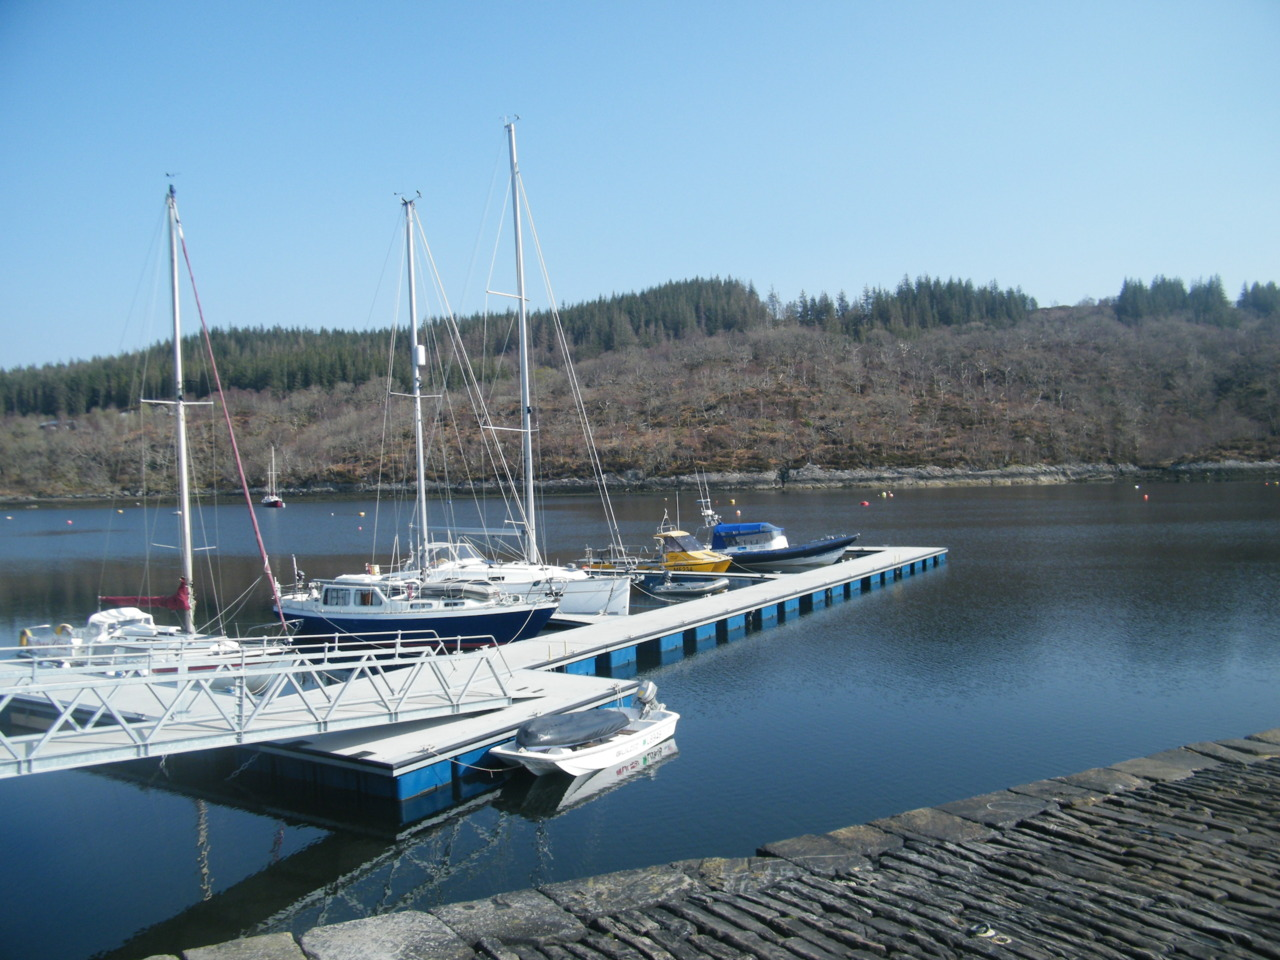 'Power of Scotland' berthed at Salen Bay Pontoons in Loch Sunart